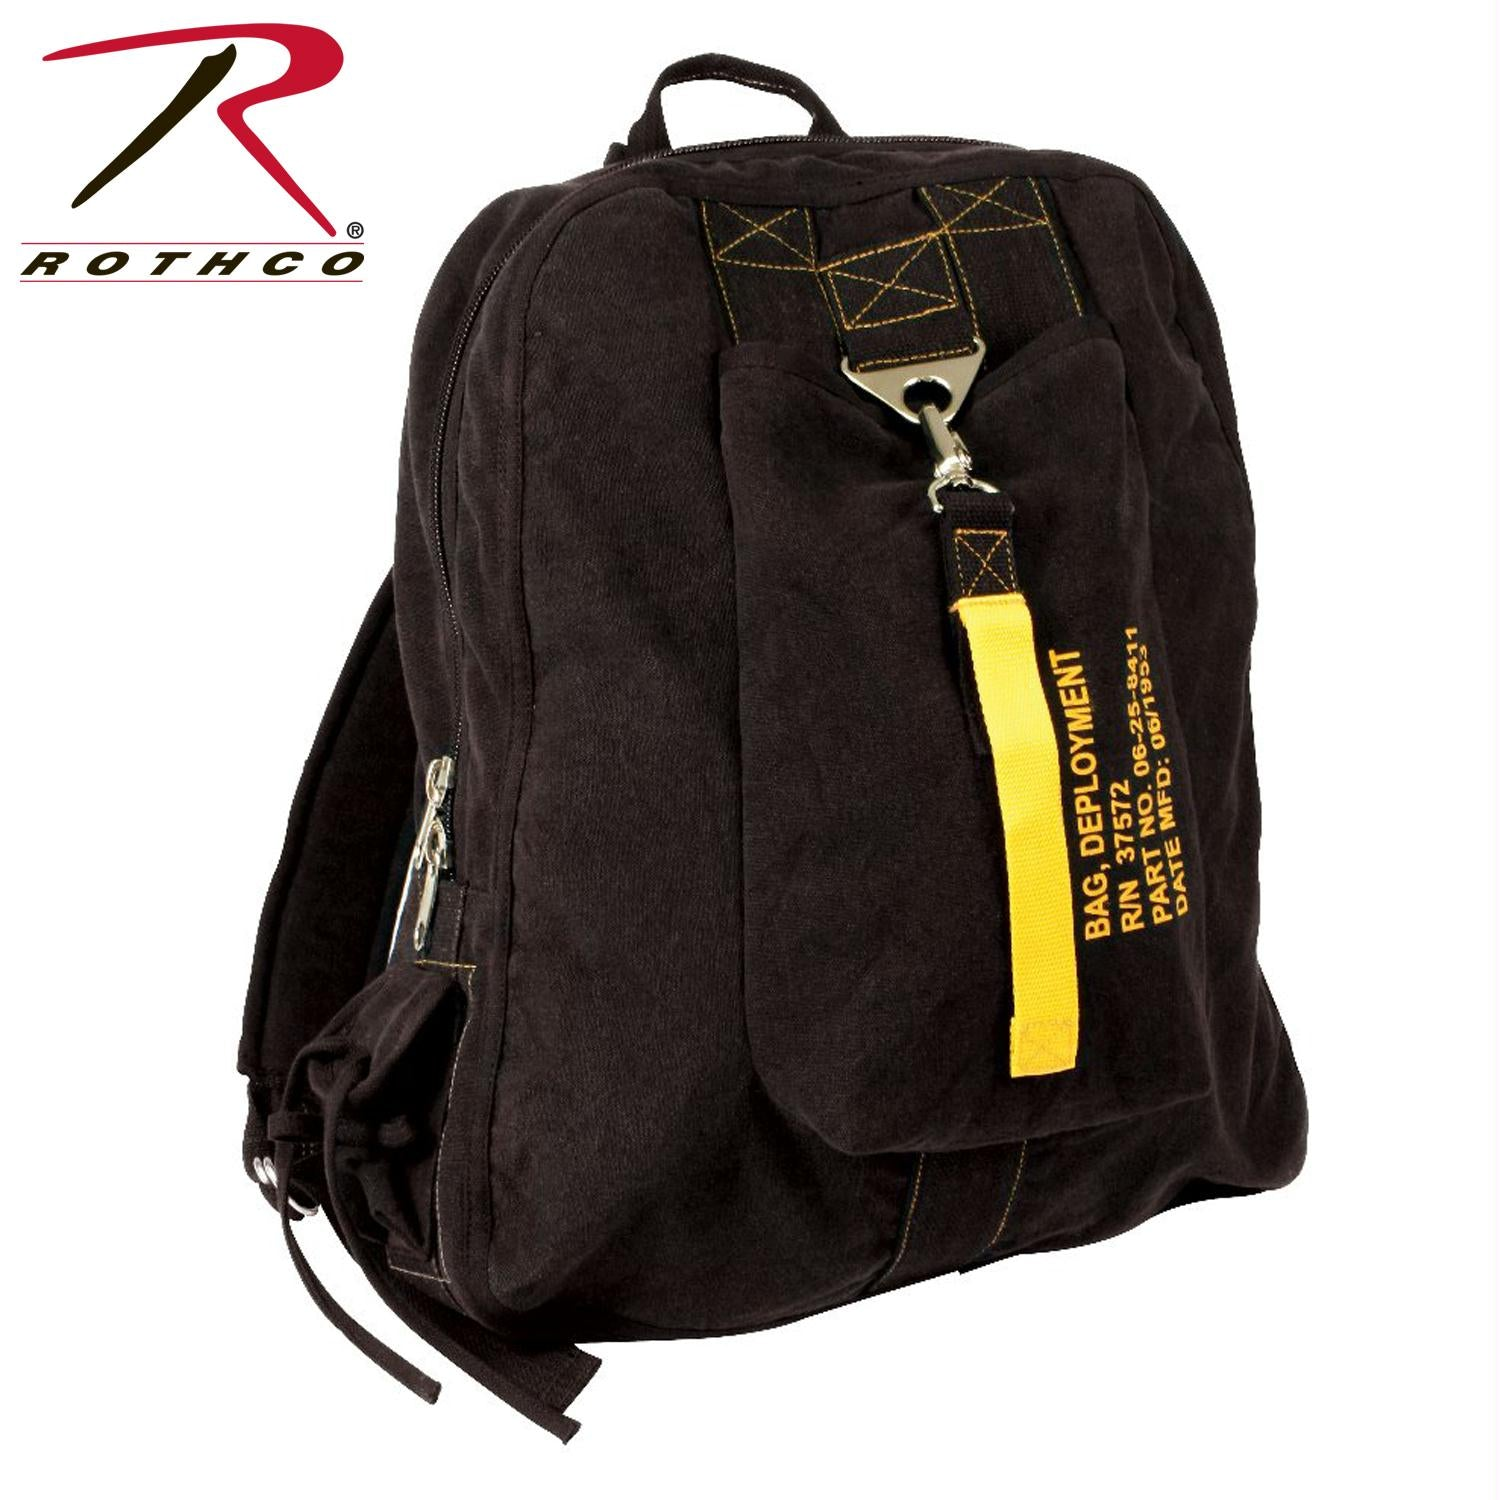 Rothco Vintage Canvas Flight Bag - Black